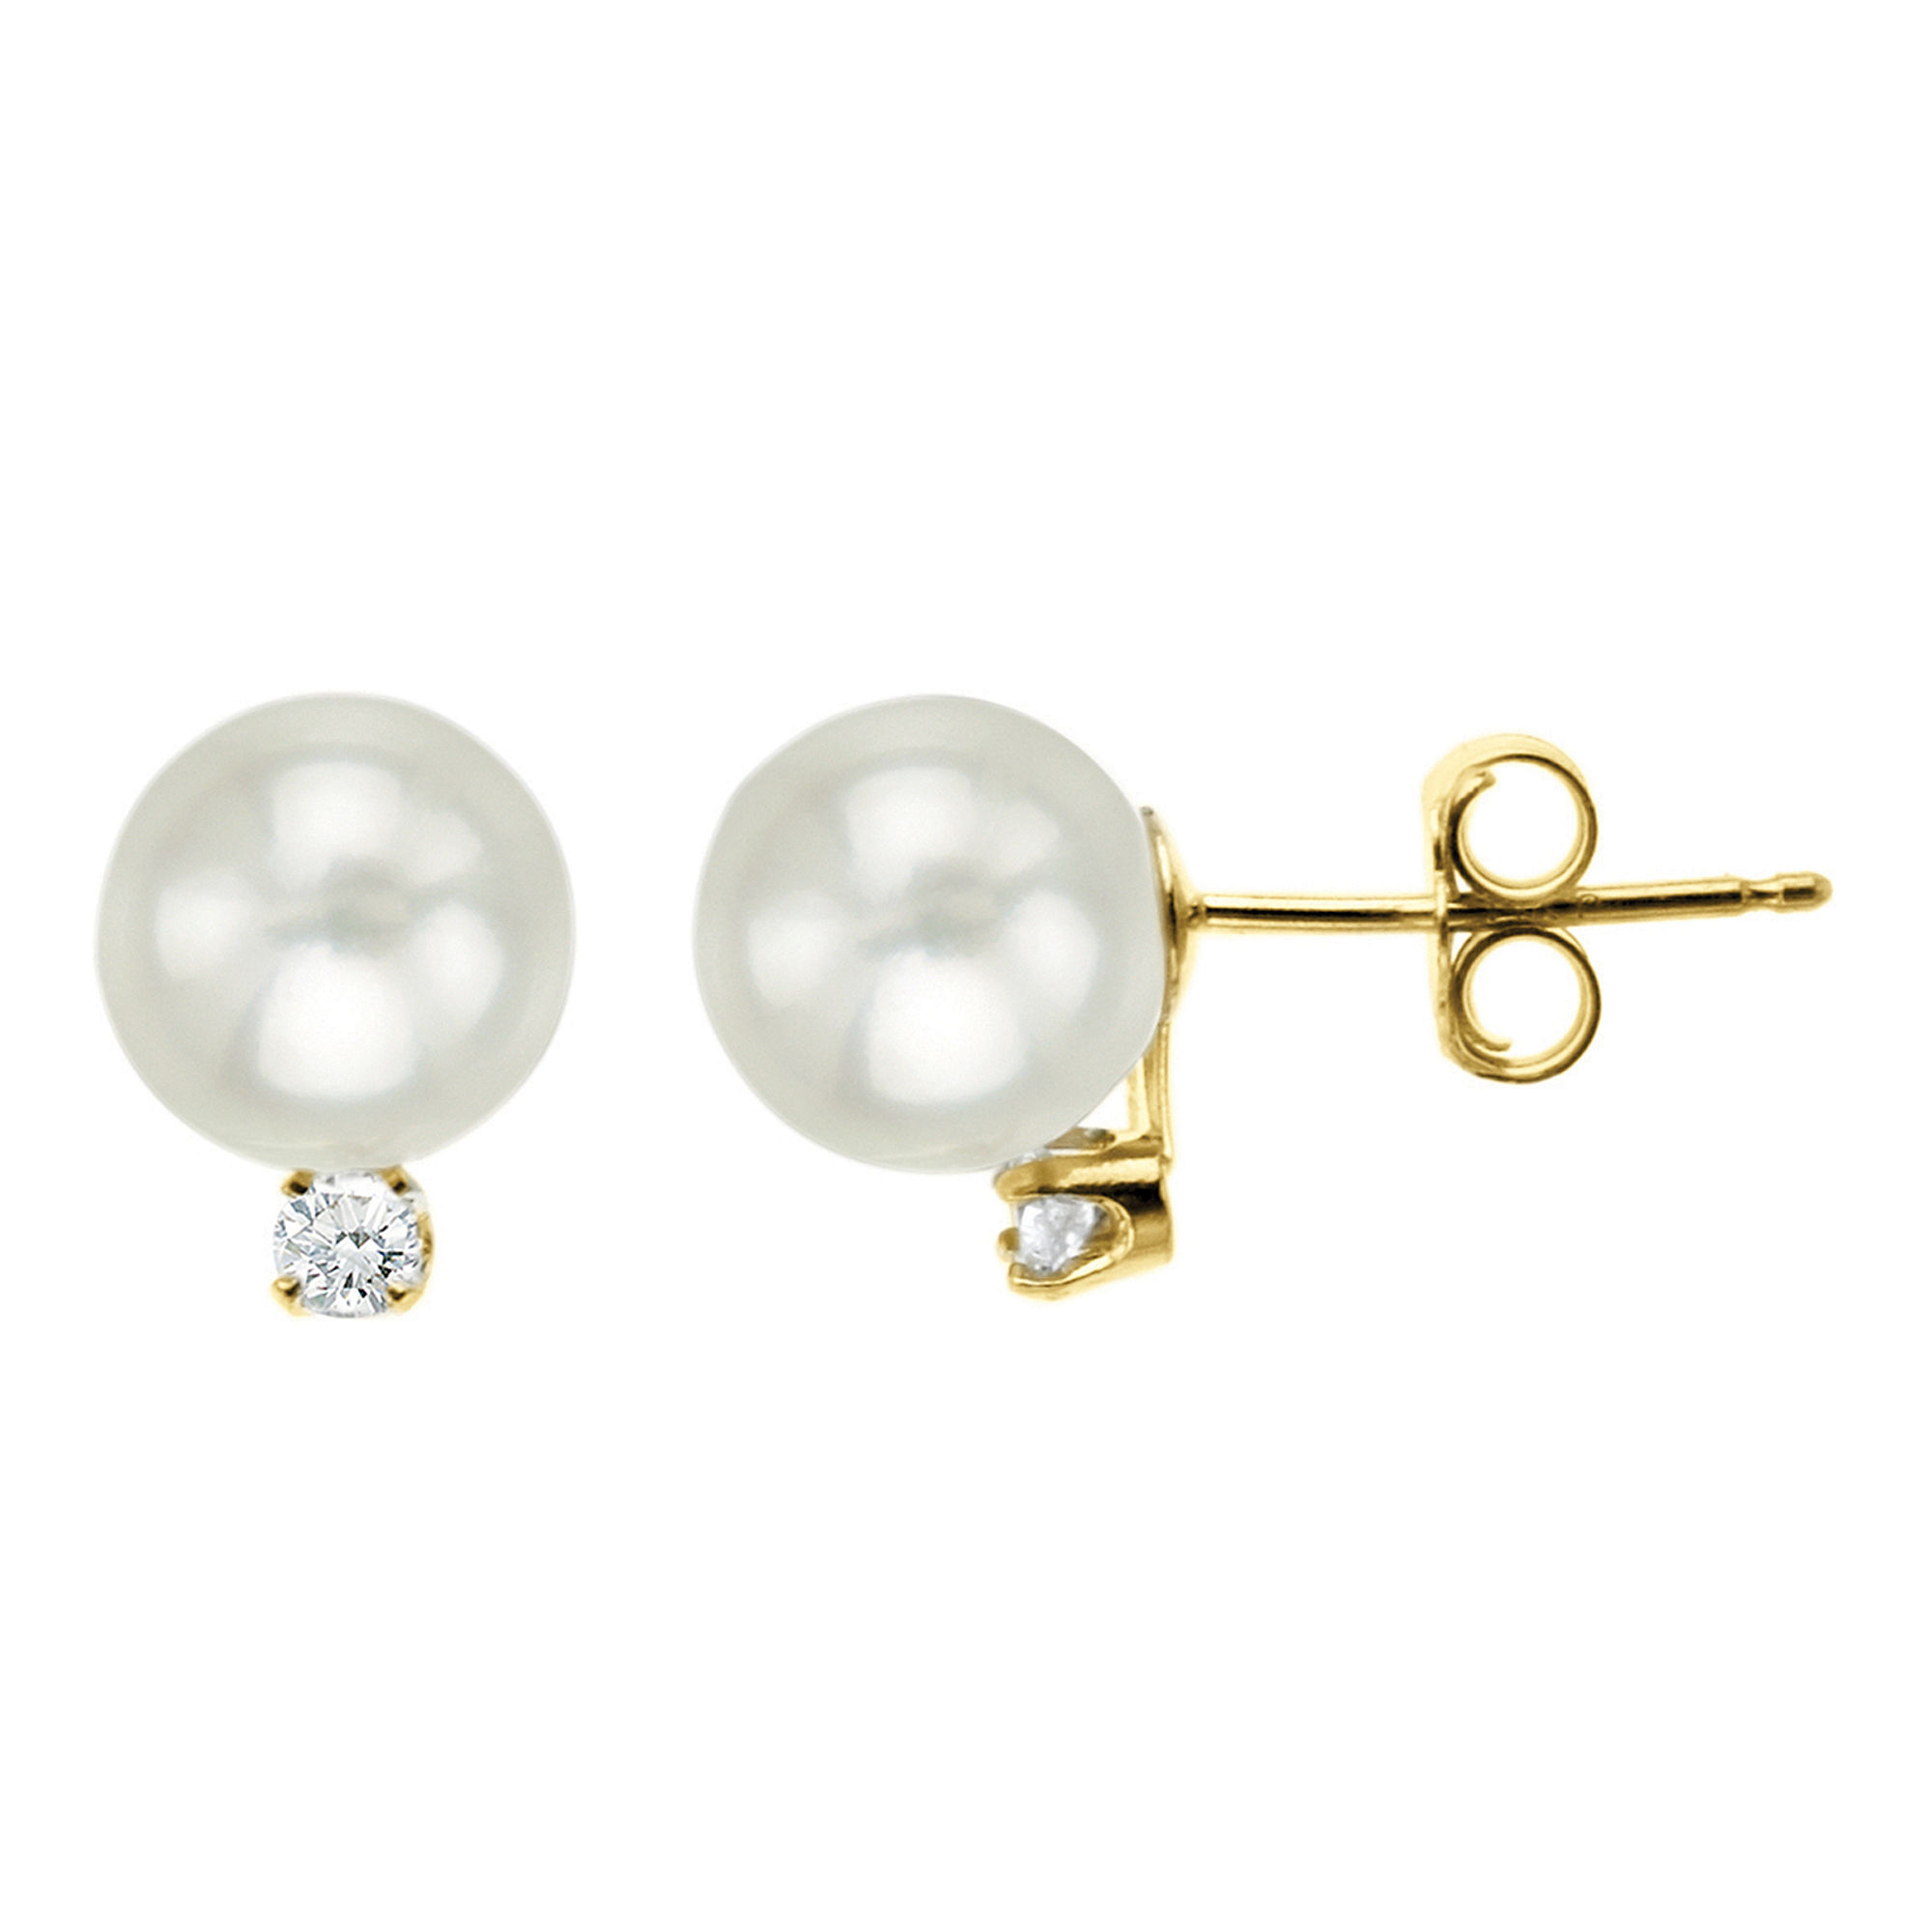 Certified Sofia™ Cultured 6mm Freshwater Pearl & Diamond-Accent Stud Earrings